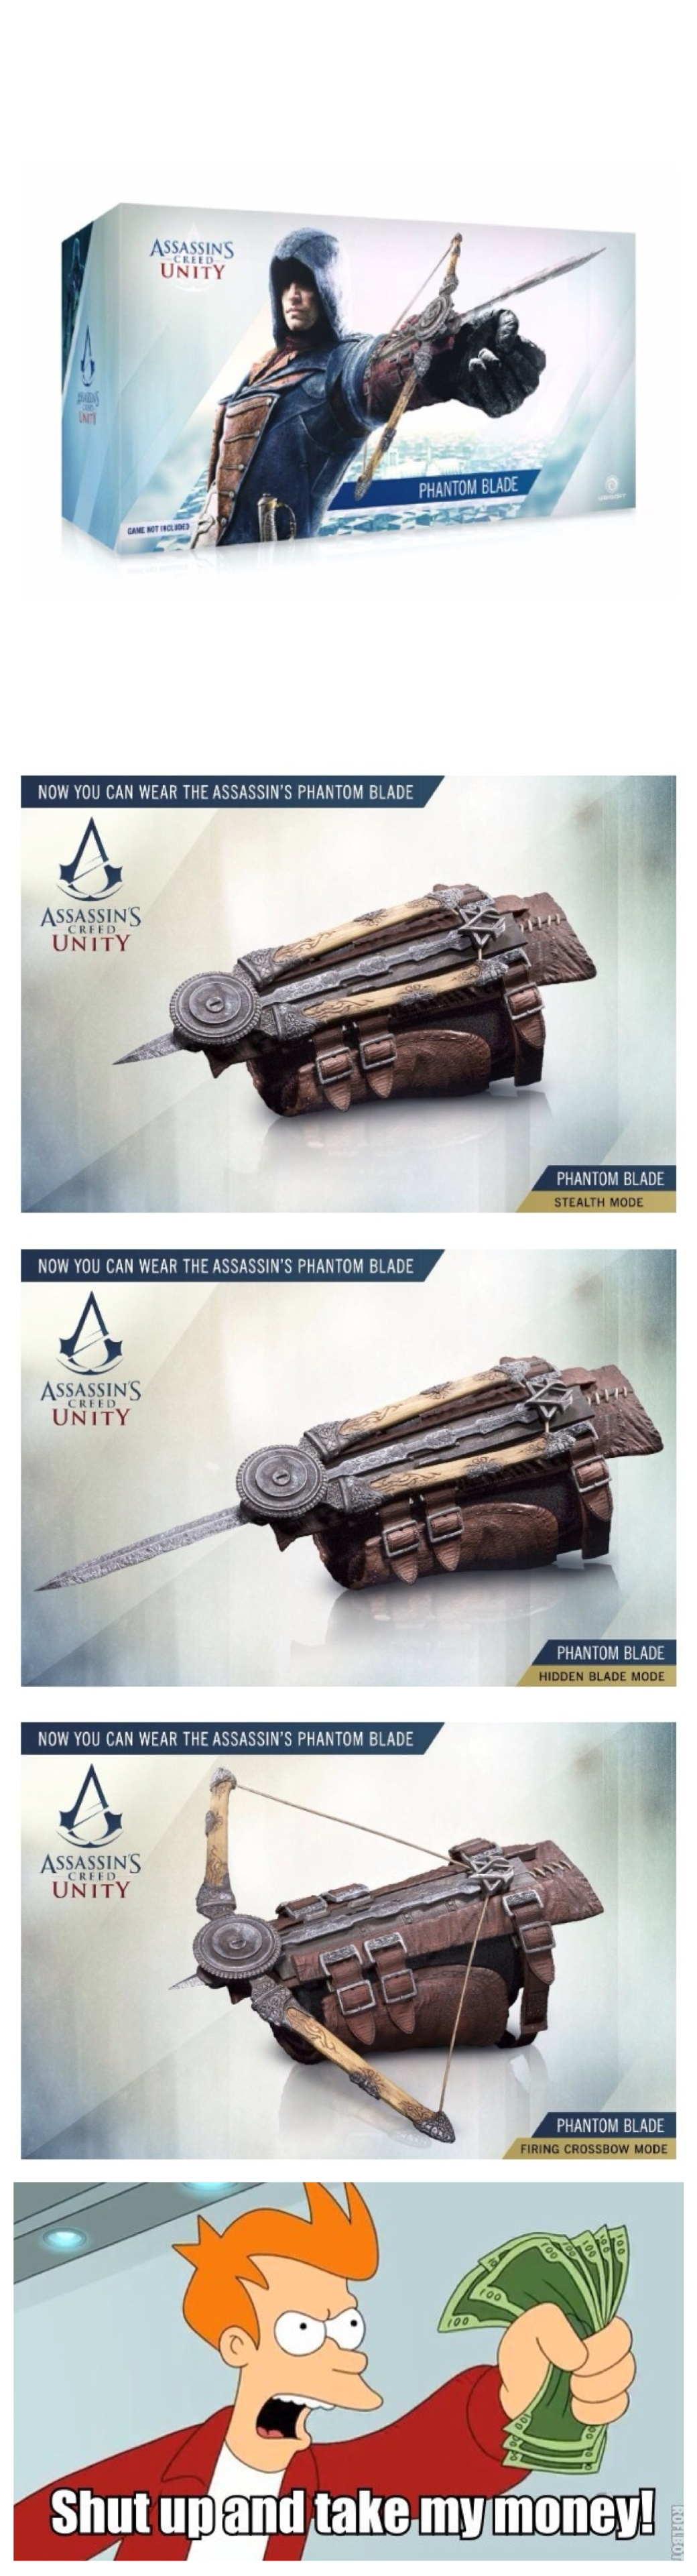 Assassin's creed unity (phantom blade) get it if you pre order the game